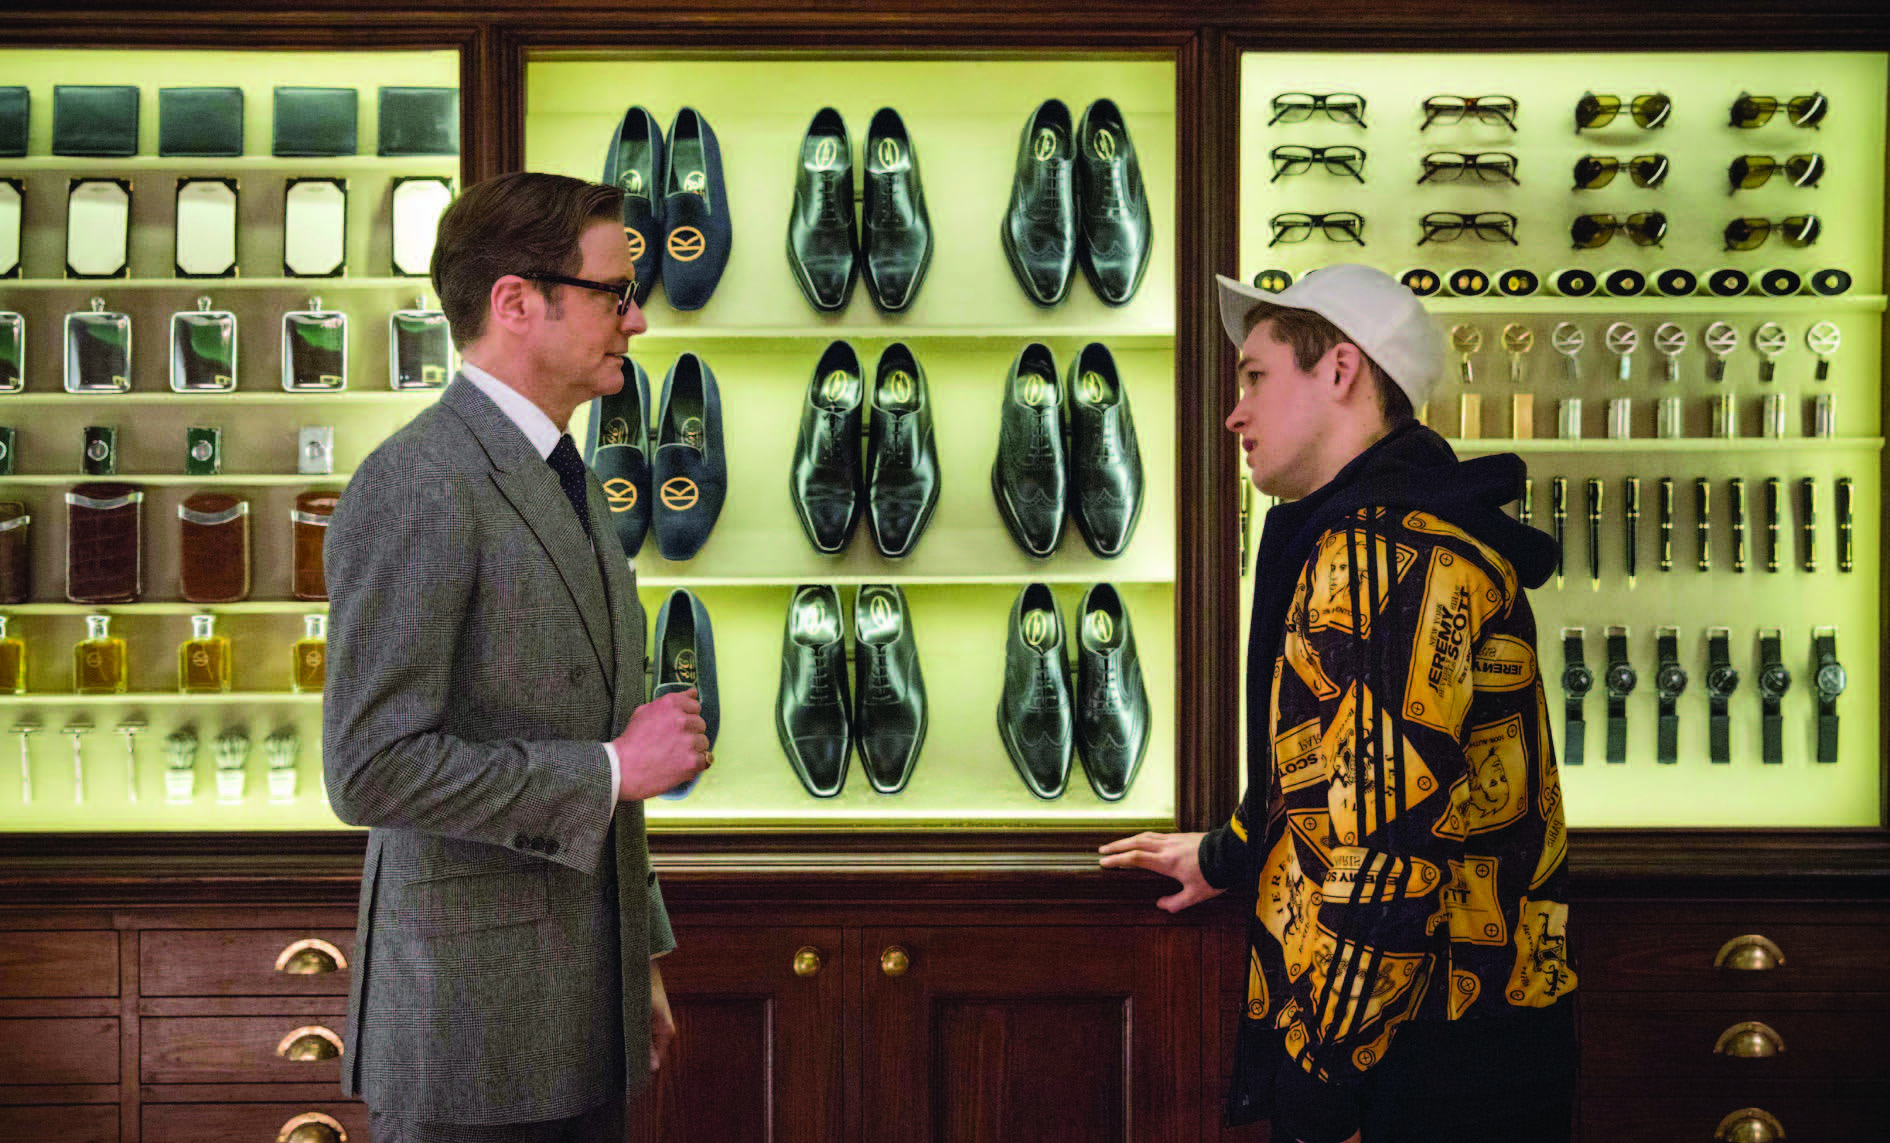 kingsman-colin-firth-michael-vaughan-mark-millar-spy-film-thriller-comedy-2014